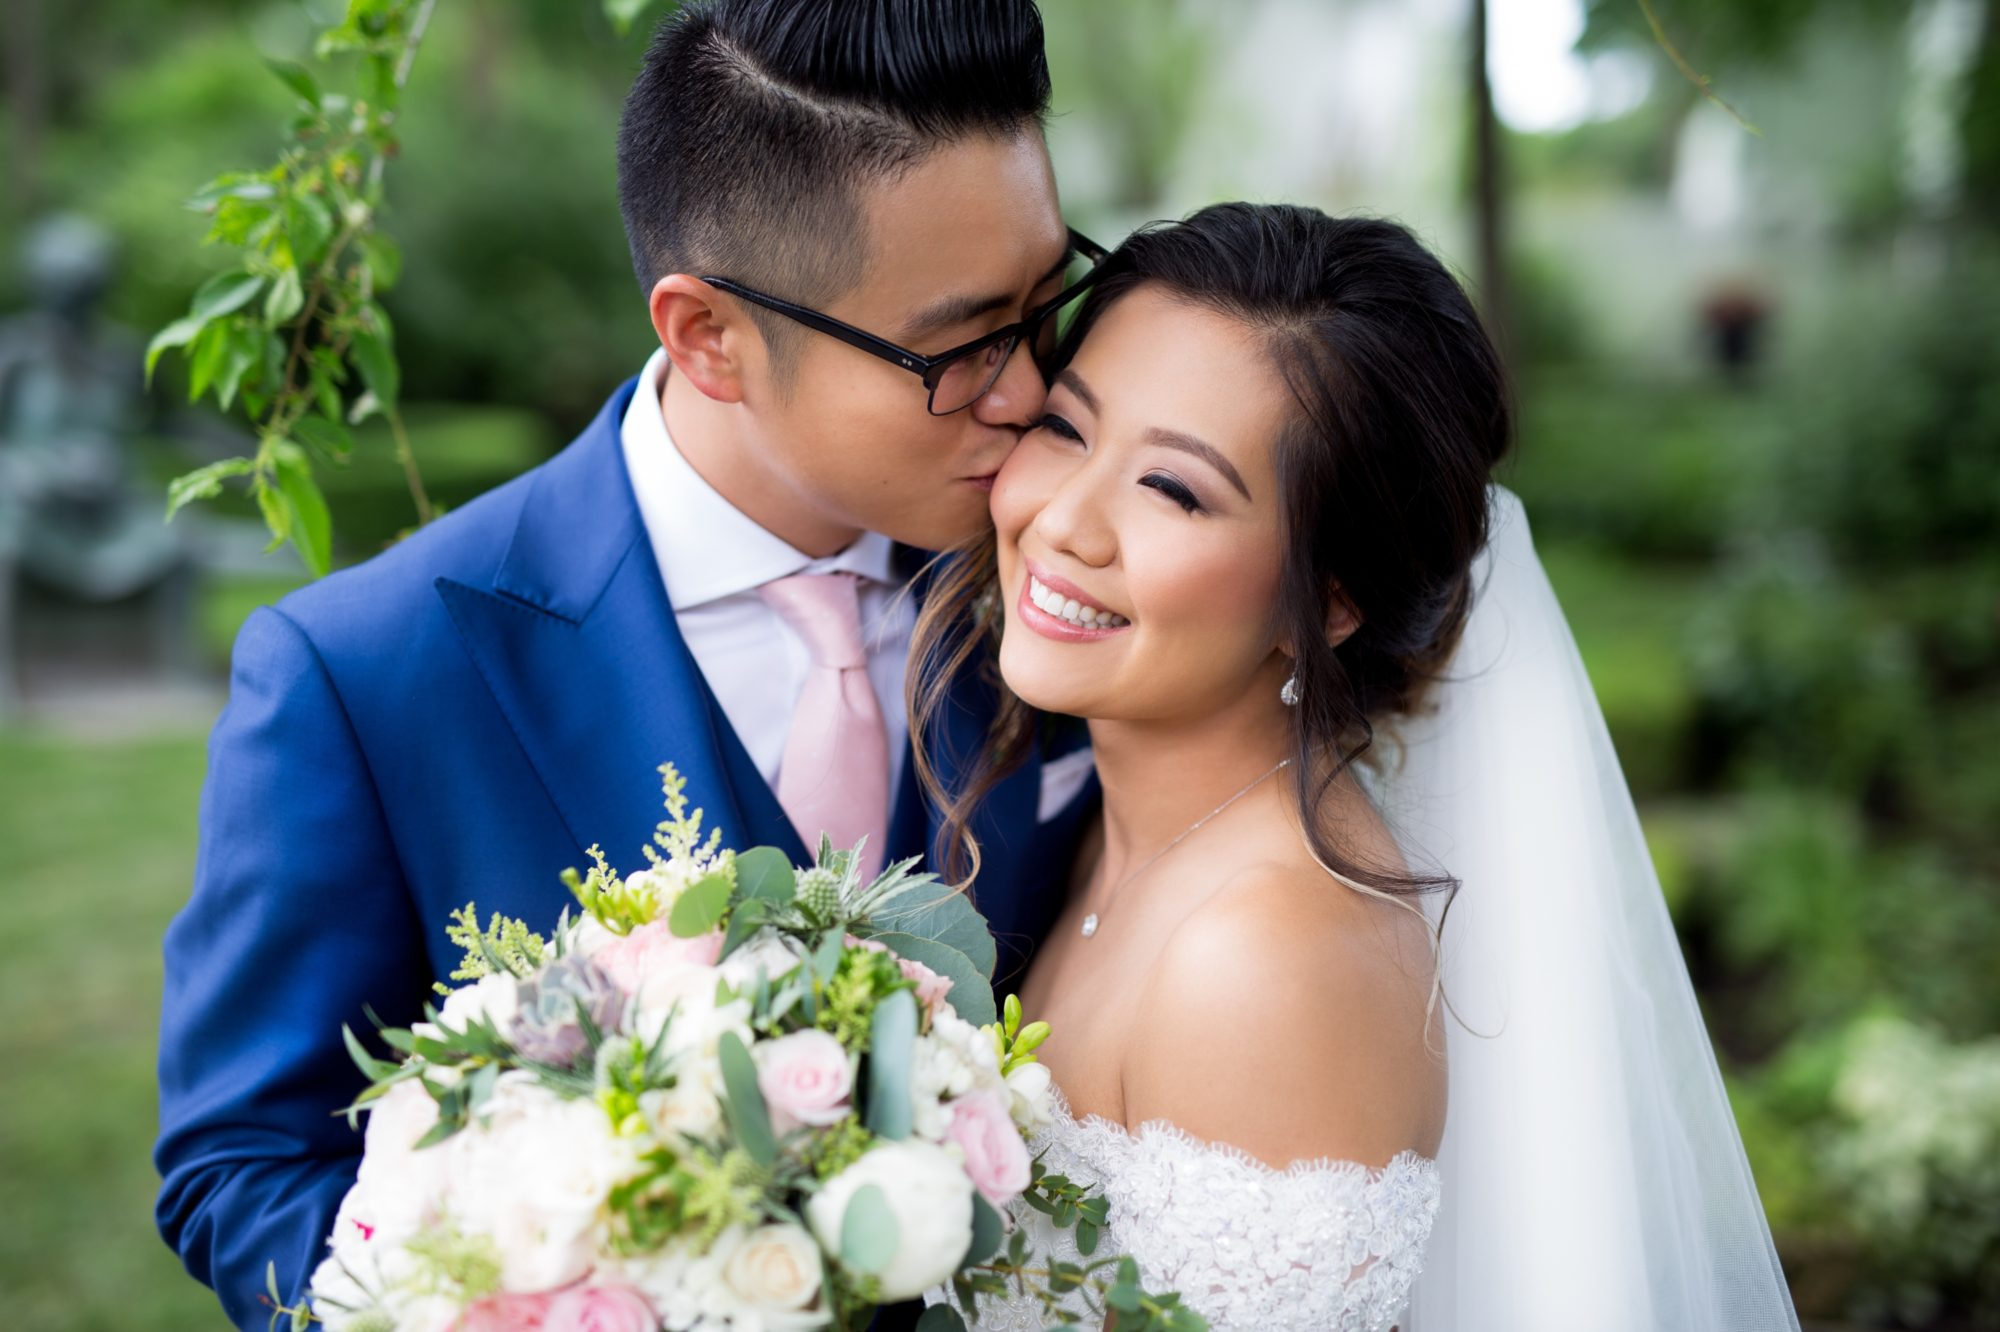 Bride Groom Toronto Chinese Korean Wedding Zsuzsi Pal Photography